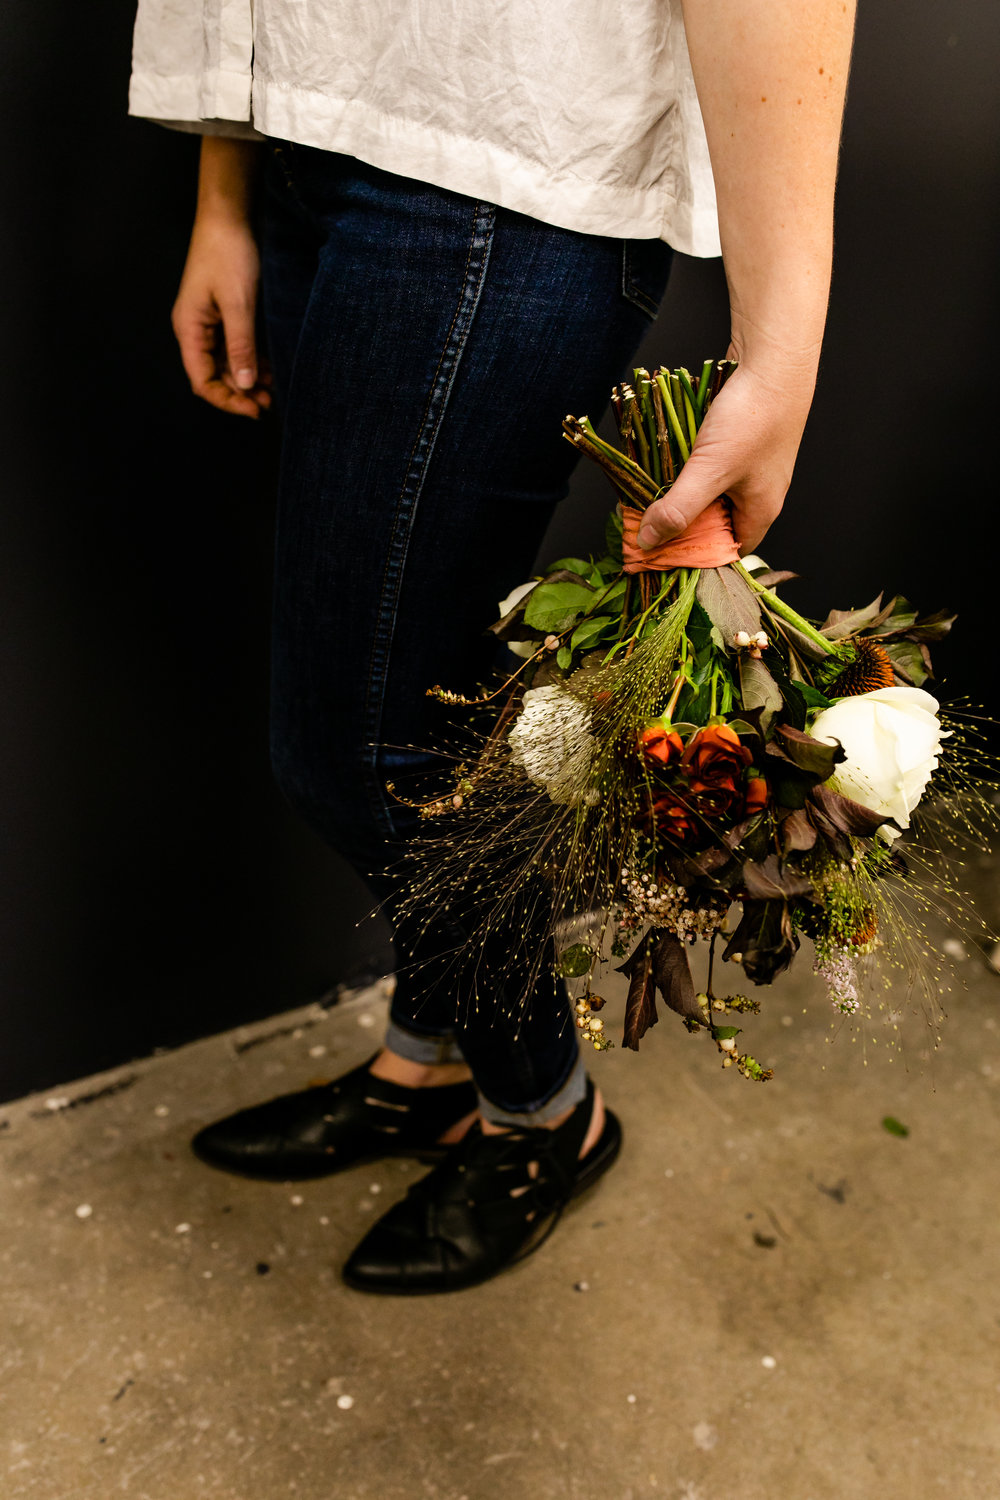 The Stem Shot: Angles to Avoid when Shooting Bouquets